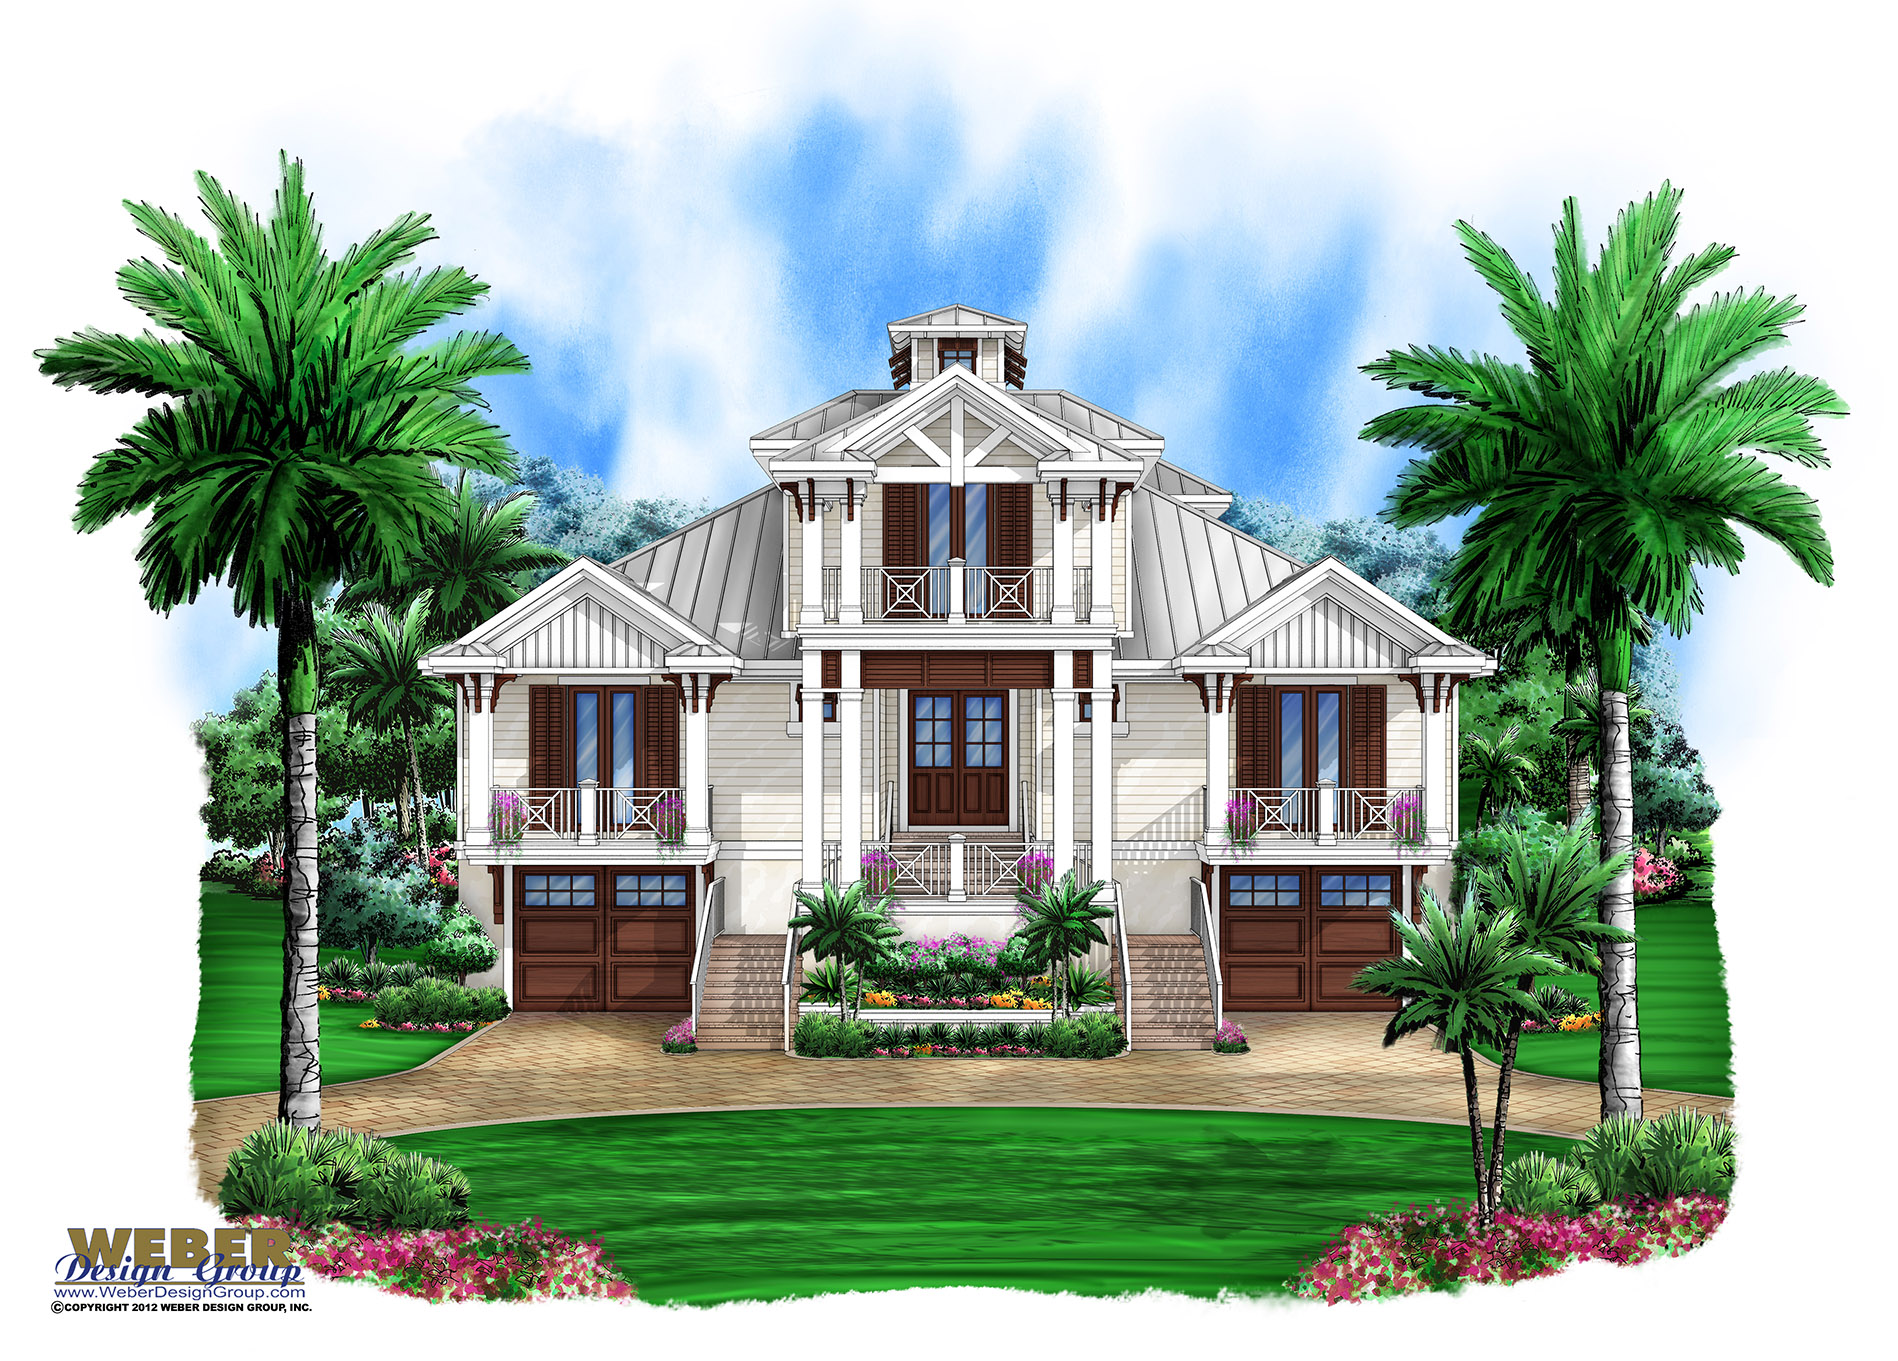 Marsh harbour olde florida house plan weber design group for Weber house plans